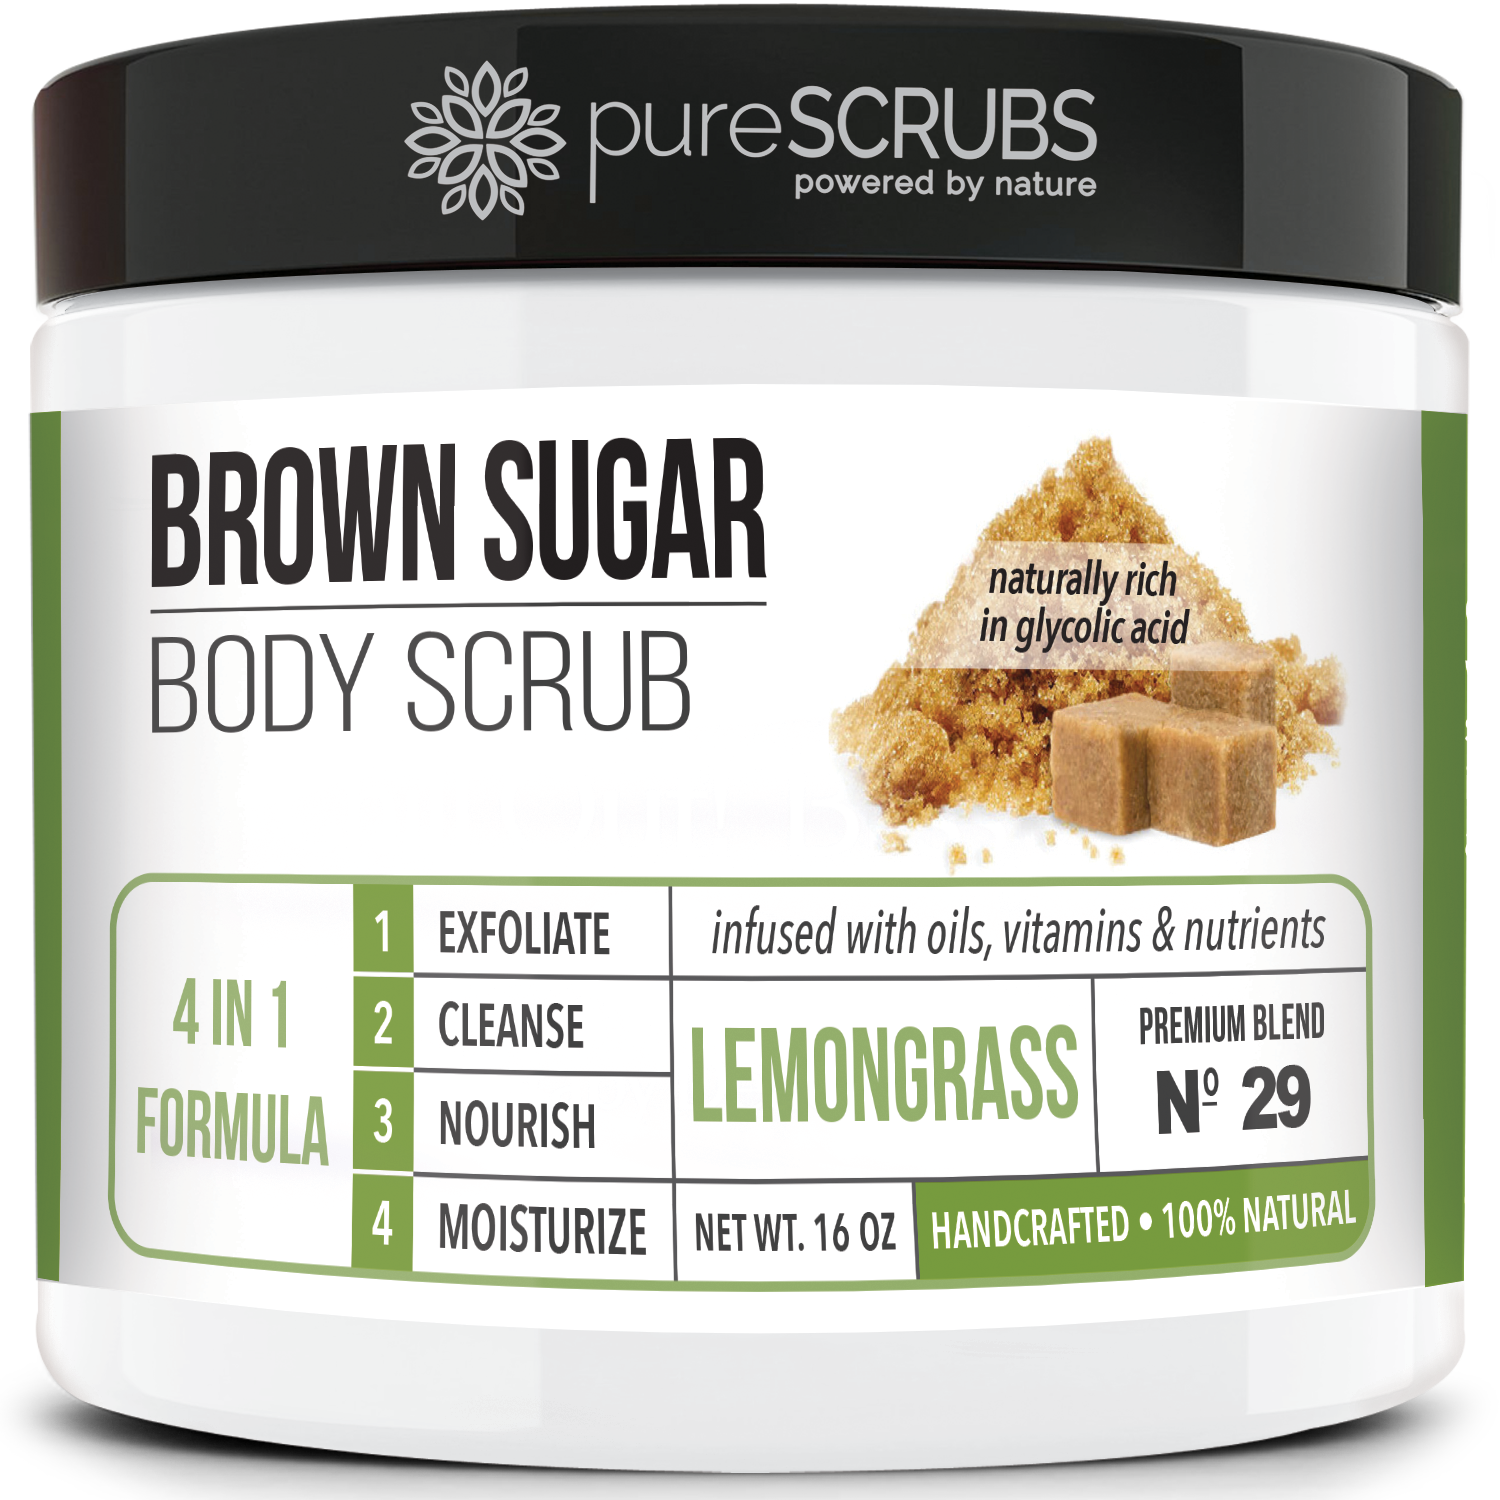 Lemongrass Body Scrub / Brown Sugar / Premium Blend #29